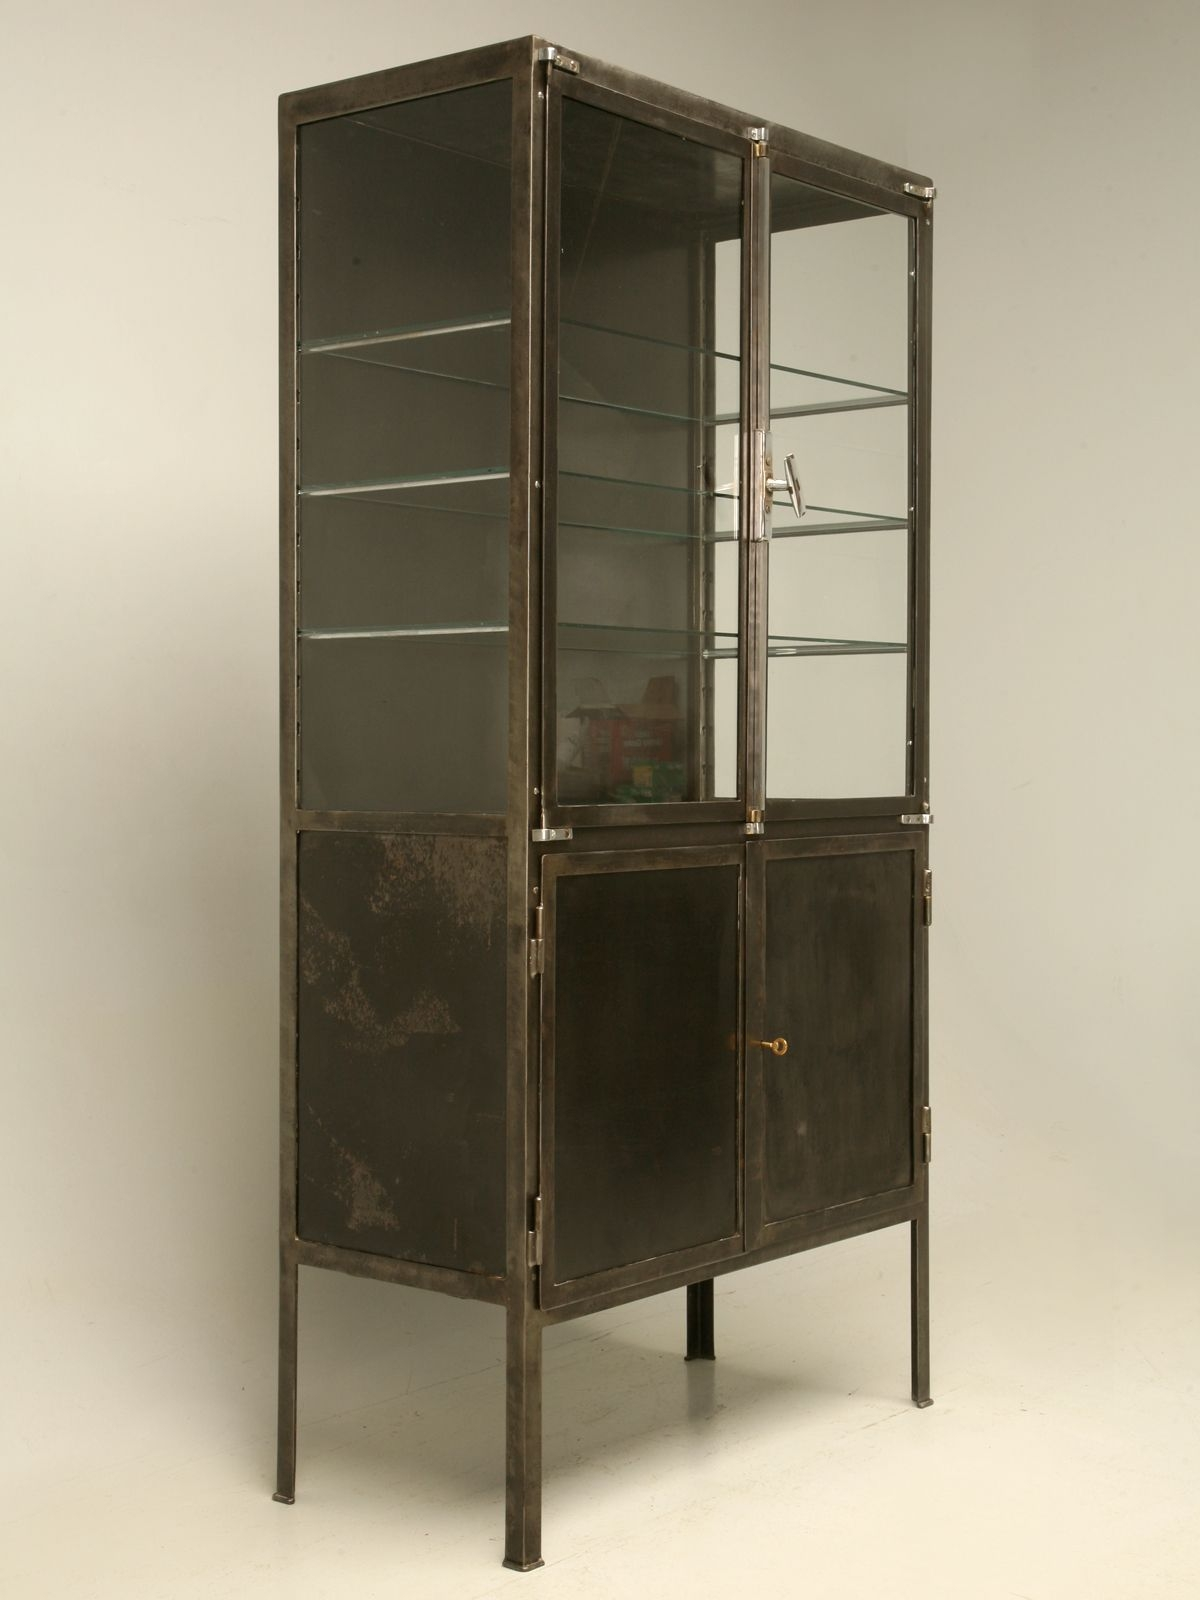 glass metal curio cabinets ideas on foter rh foter com metal and glass upper cabinets metal and glass cabinets